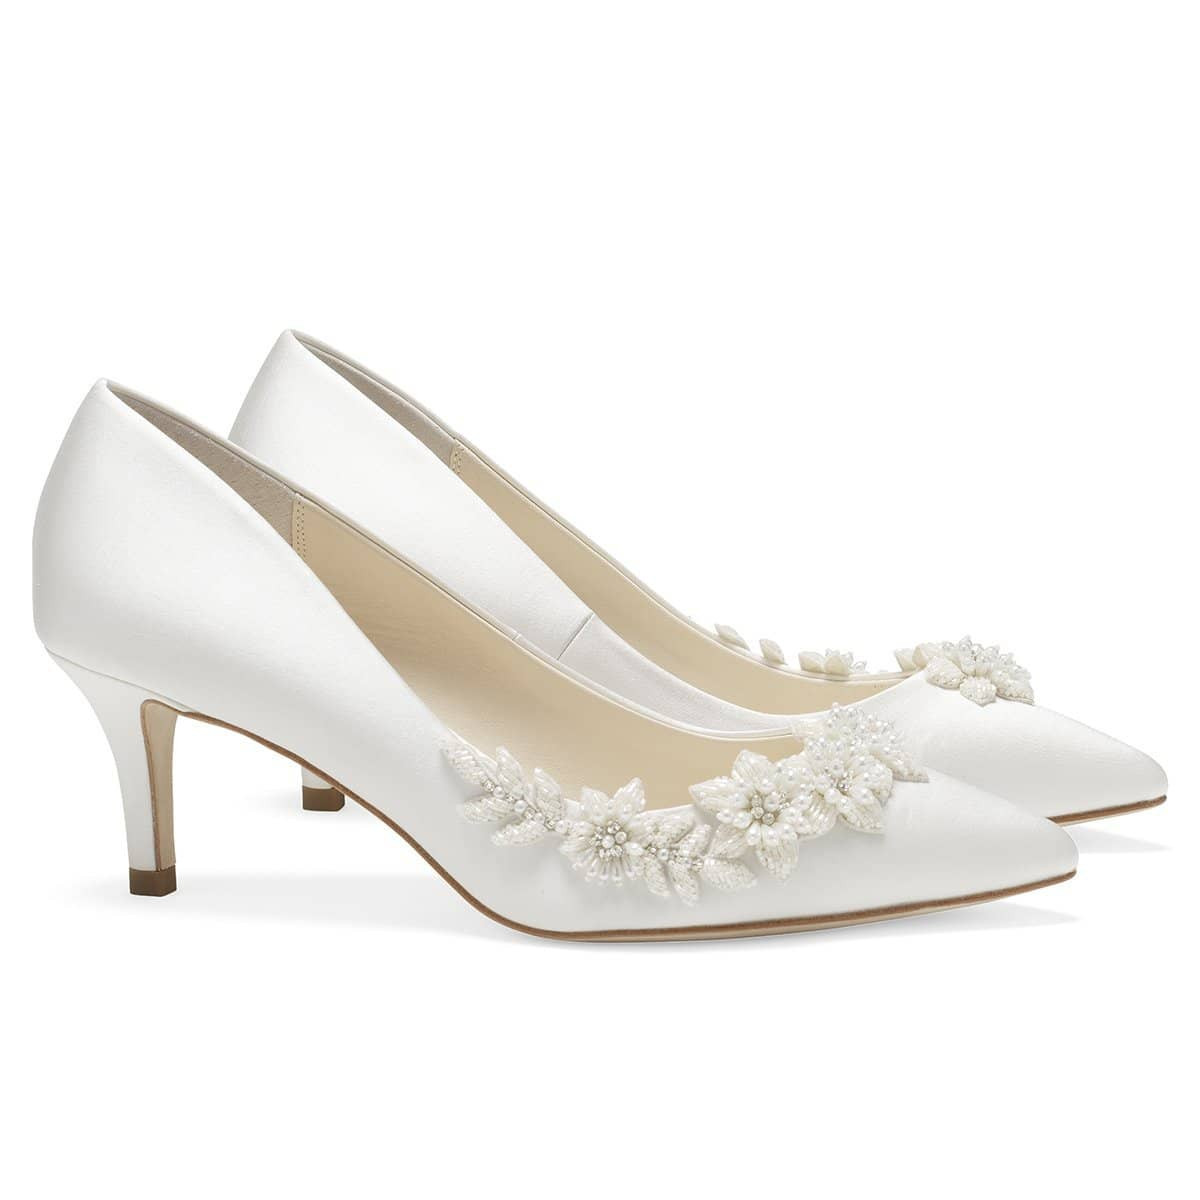 The perfect ivory or light blue heels wedding guests will admire, Iris Blue. These blue kitten heel wedding shoes embody tradition re-imagined and re-defined. Teardrop luminous pearls and ivory beads are embellished in the shape of flowers and vines sweeping the side of these blue kitten heels wedding shoes. The 3D ivory blooms and vines provide textural contrast to the soft blue silk. These blue low heels wedding occasion pieces provide comfort, tradition, and style.